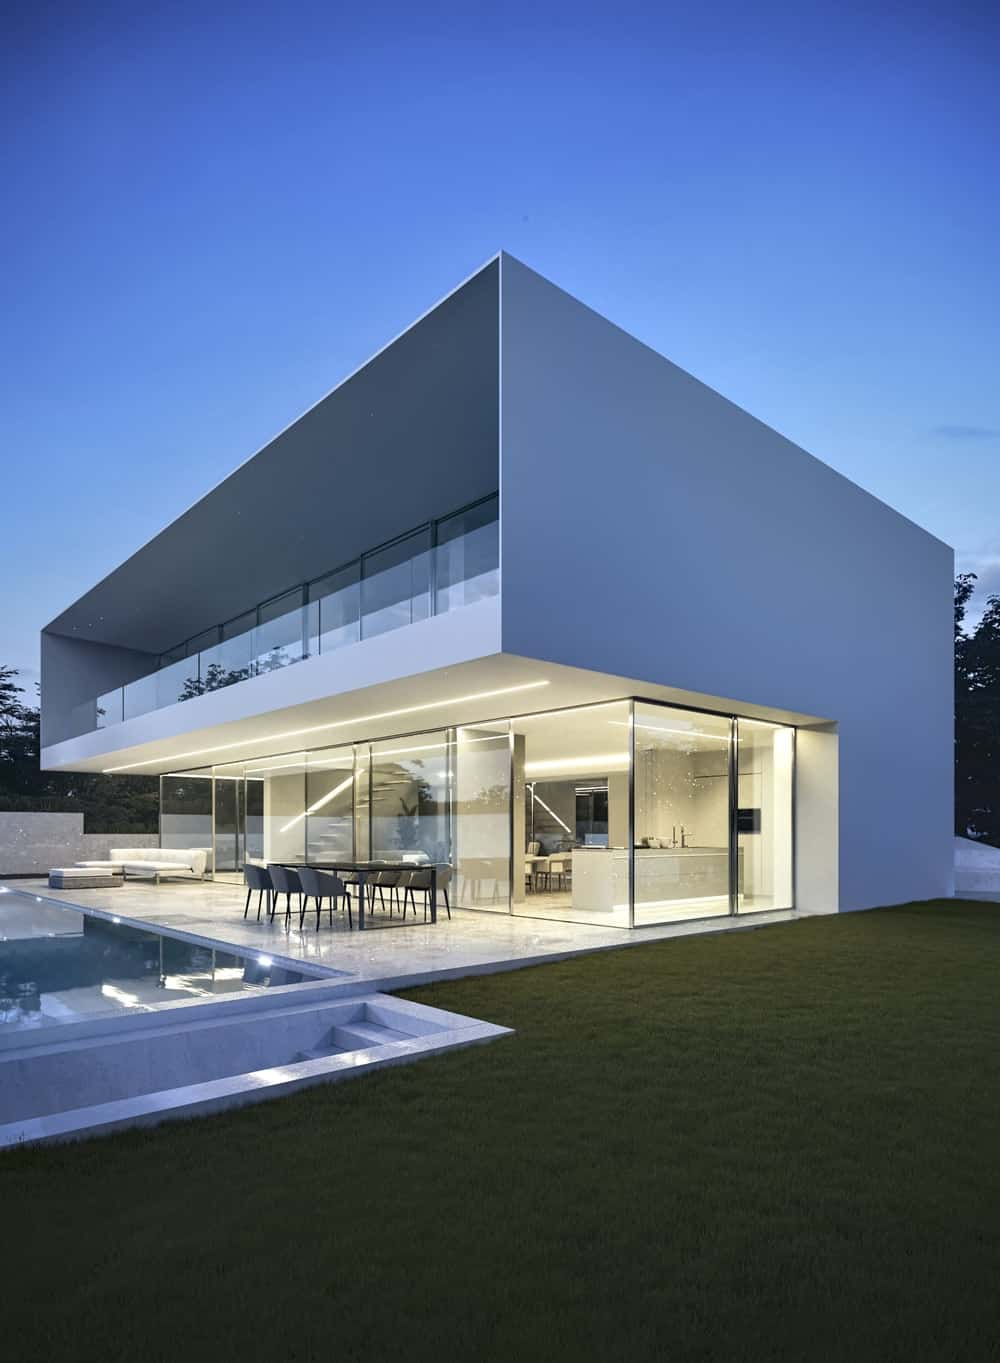 This is a view of the house showcasing the covered patio and the large balcony with glass railings and only the ground level is lit.